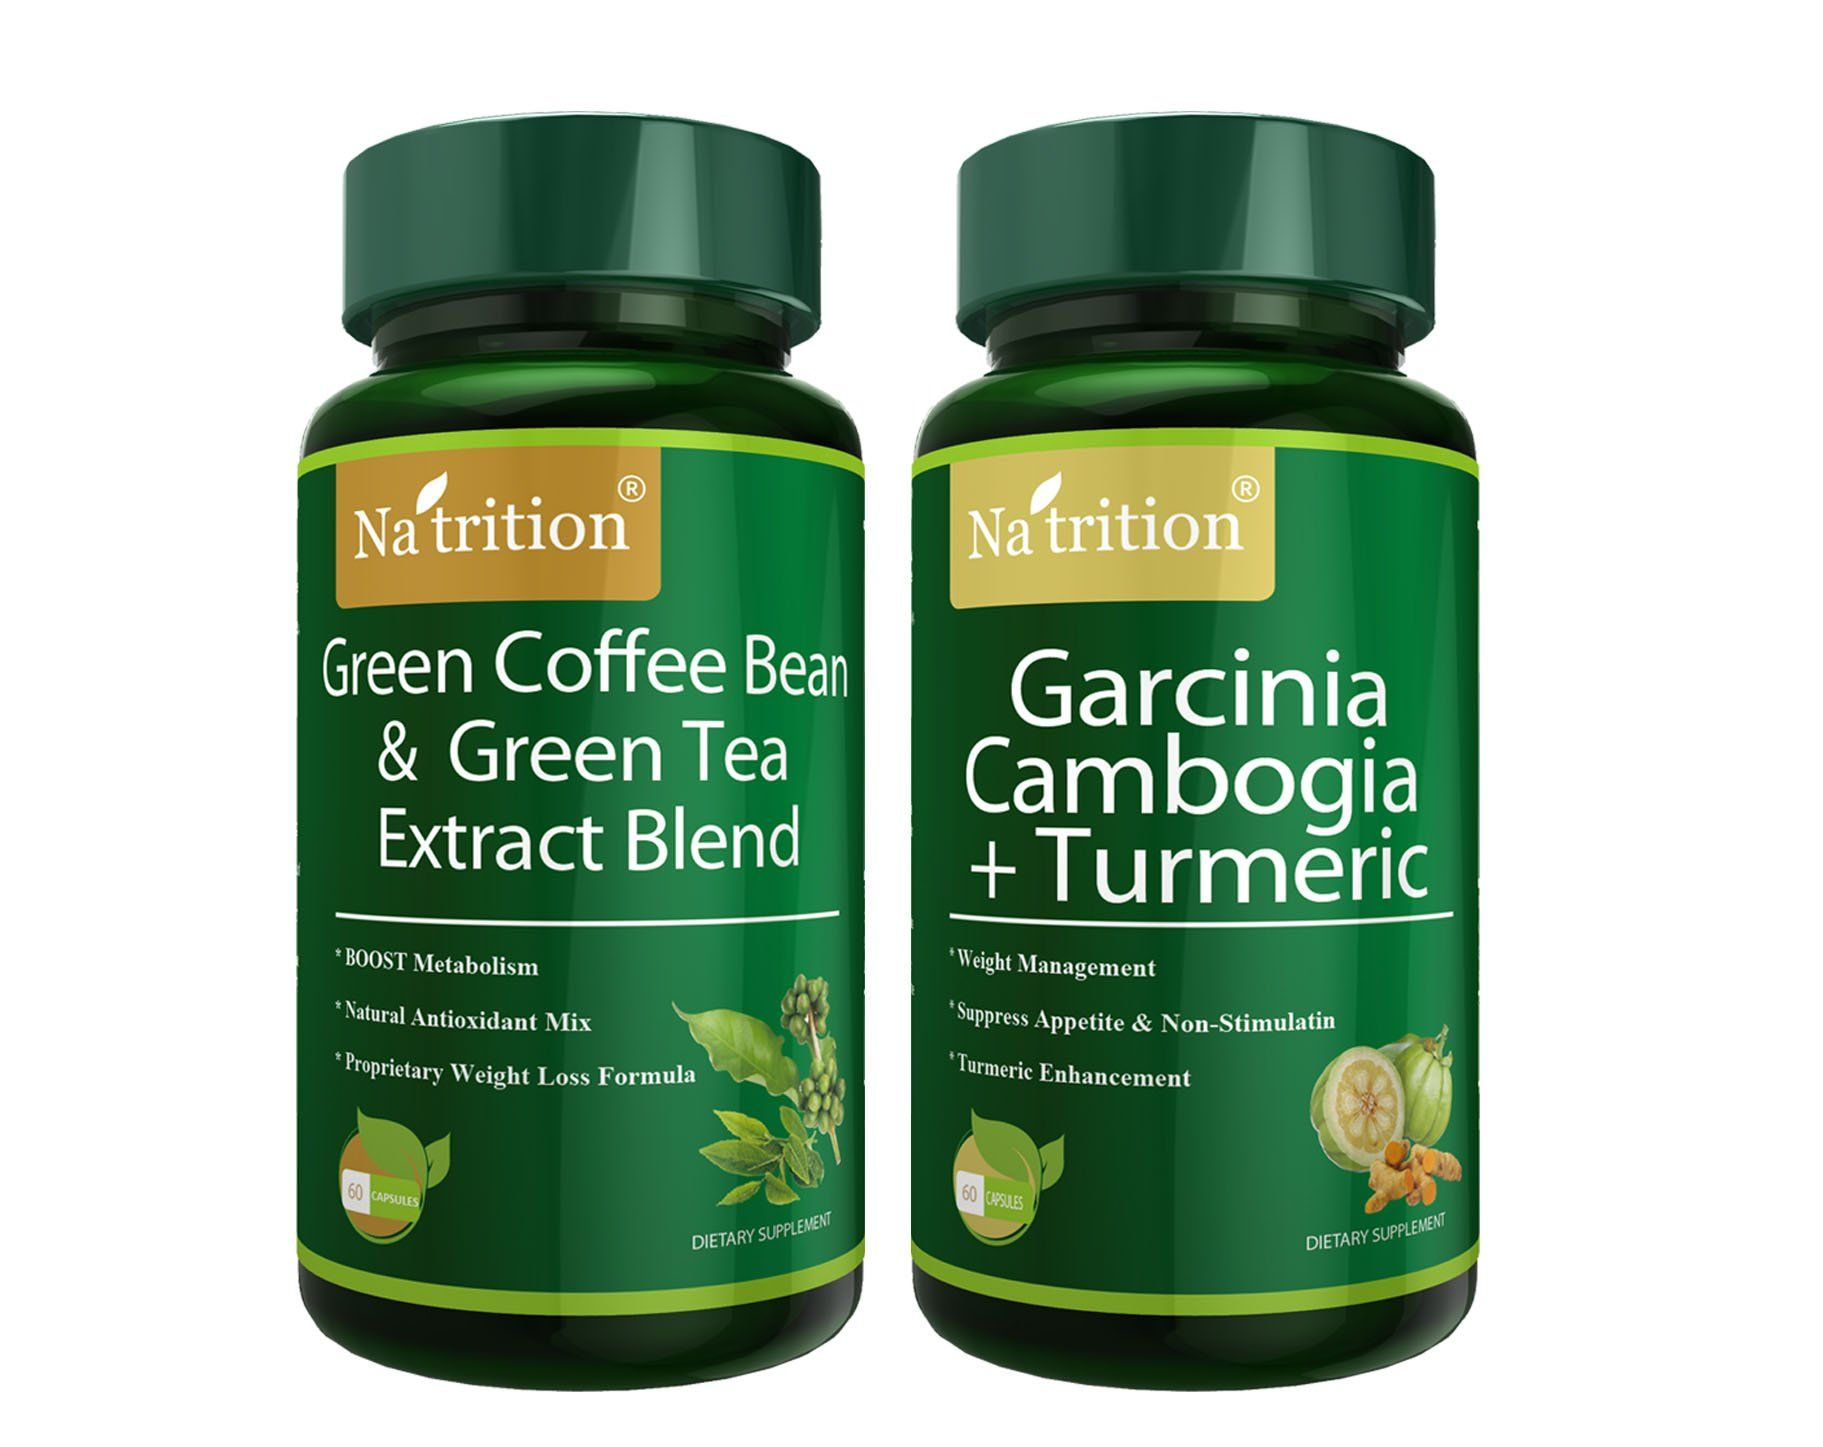 Natrition Green Coffee Bean Plus Green Tea Extract Blend And